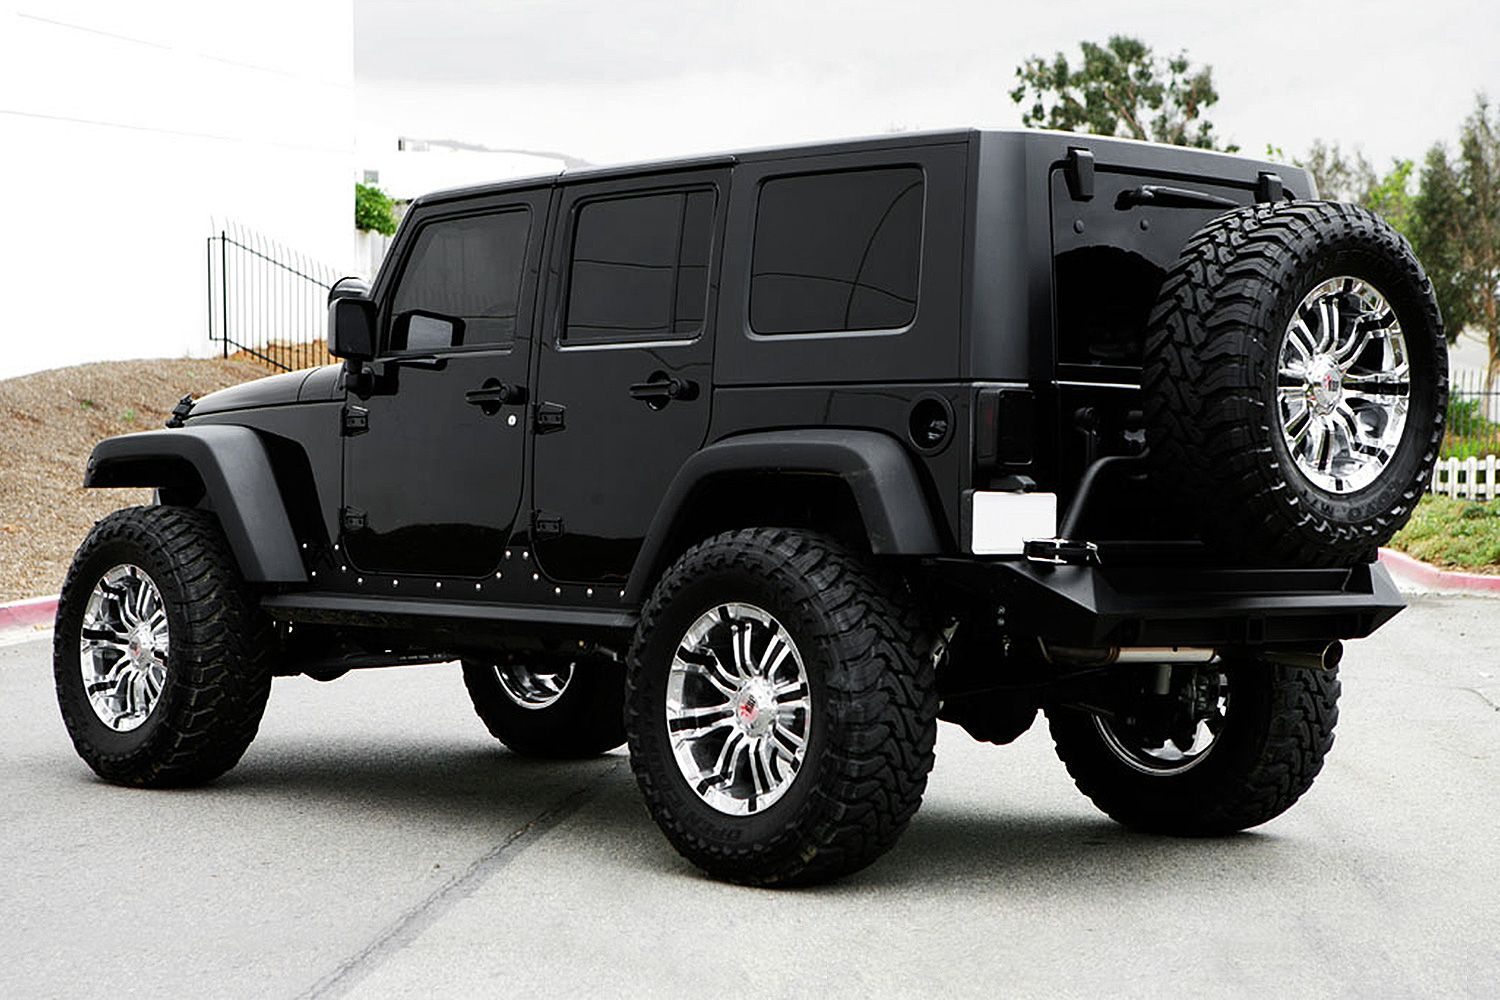 The 25 best black jeep wrangler ideas on pinterest black jeep jeep wrangler truck and jeeps